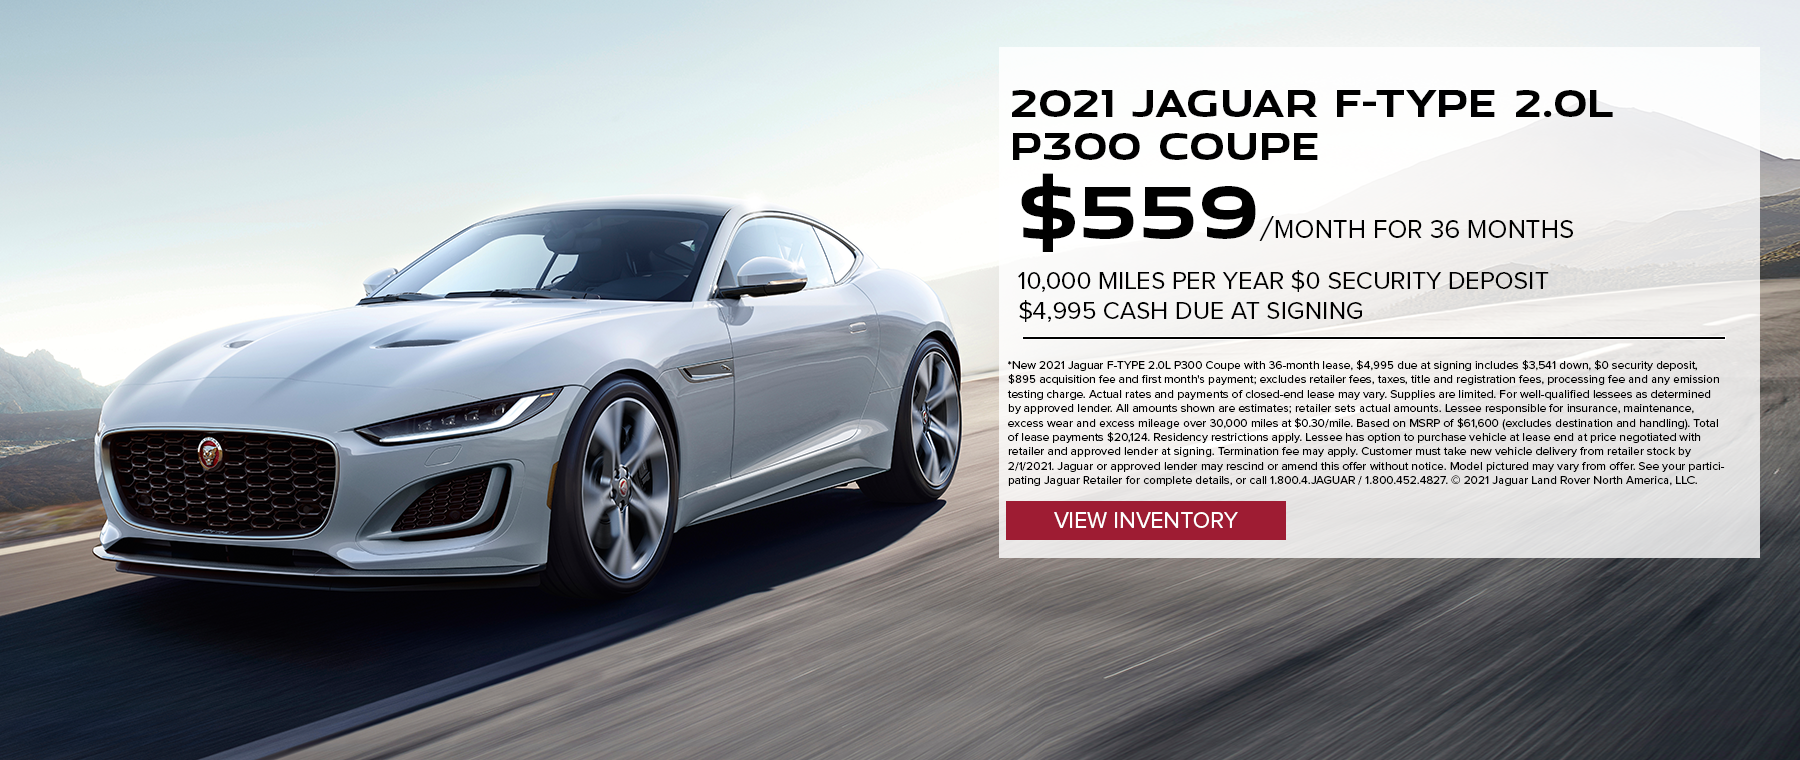 2021 JAGUAR F-TYPE 2.0L P300 COUPE. $559 PER MONTH. 36 MONTH LEASE TERM. $4,995 CASH DUE AT SIGNING. $0 SECURITY DEPOSIT. 10,000 MILES PER YEAR. EXCLUDES RETAILER FEES, TAXES, TITLE AND REGISTRATION FEES, PROCESSING FEE AND ANY EMISSION TESTING CHARGE. OFFER ENDS 2/1/2021.